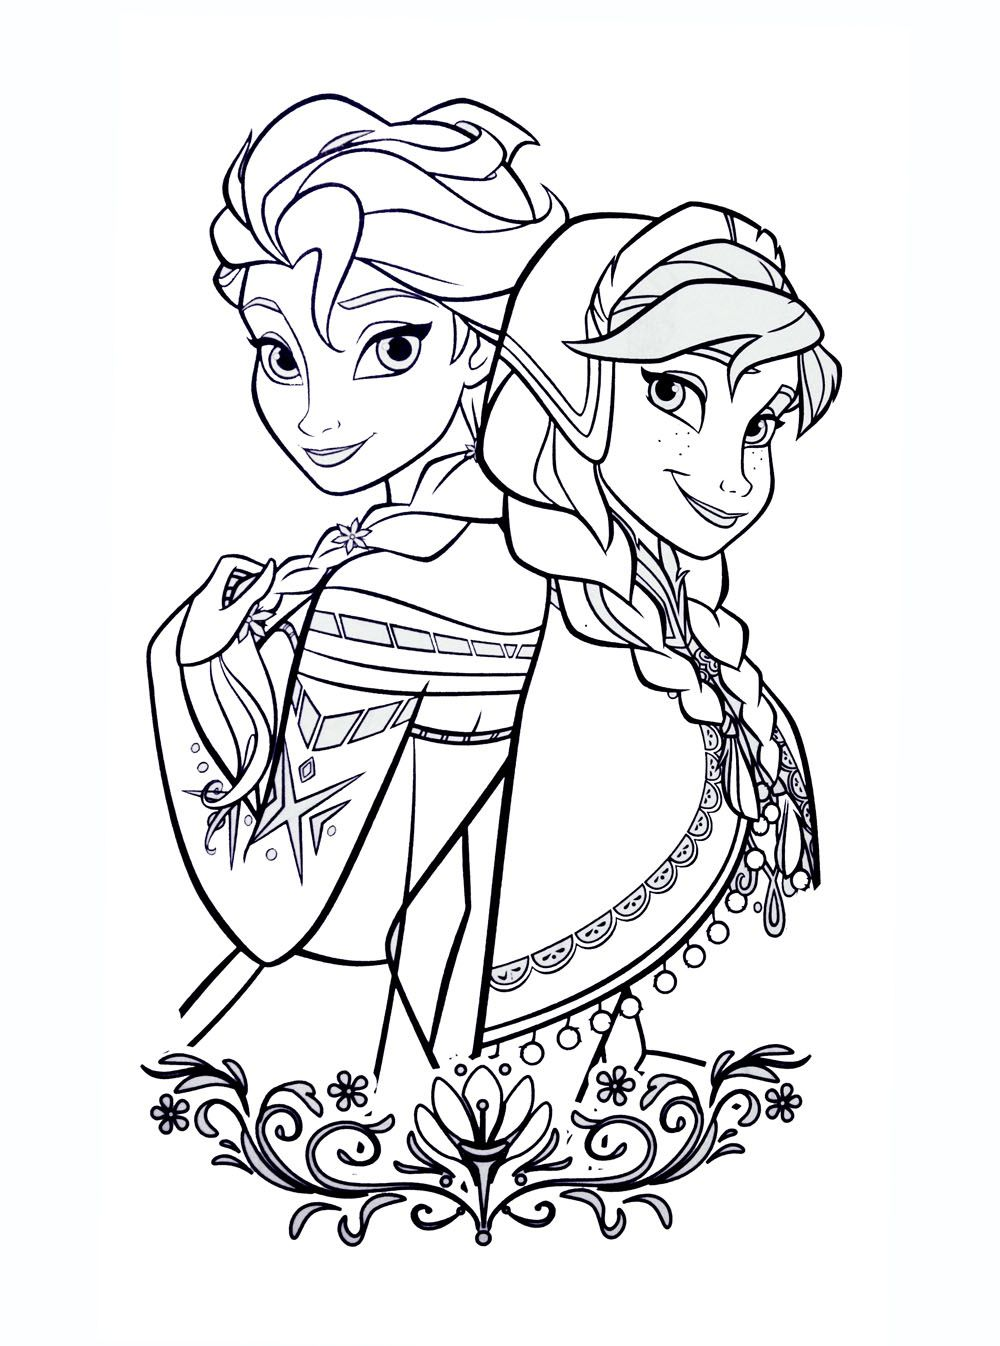 Coloriage Monstre Reine Des Neiges.Coloriages La Reine Des Neiges A Imprimer Color Frozen